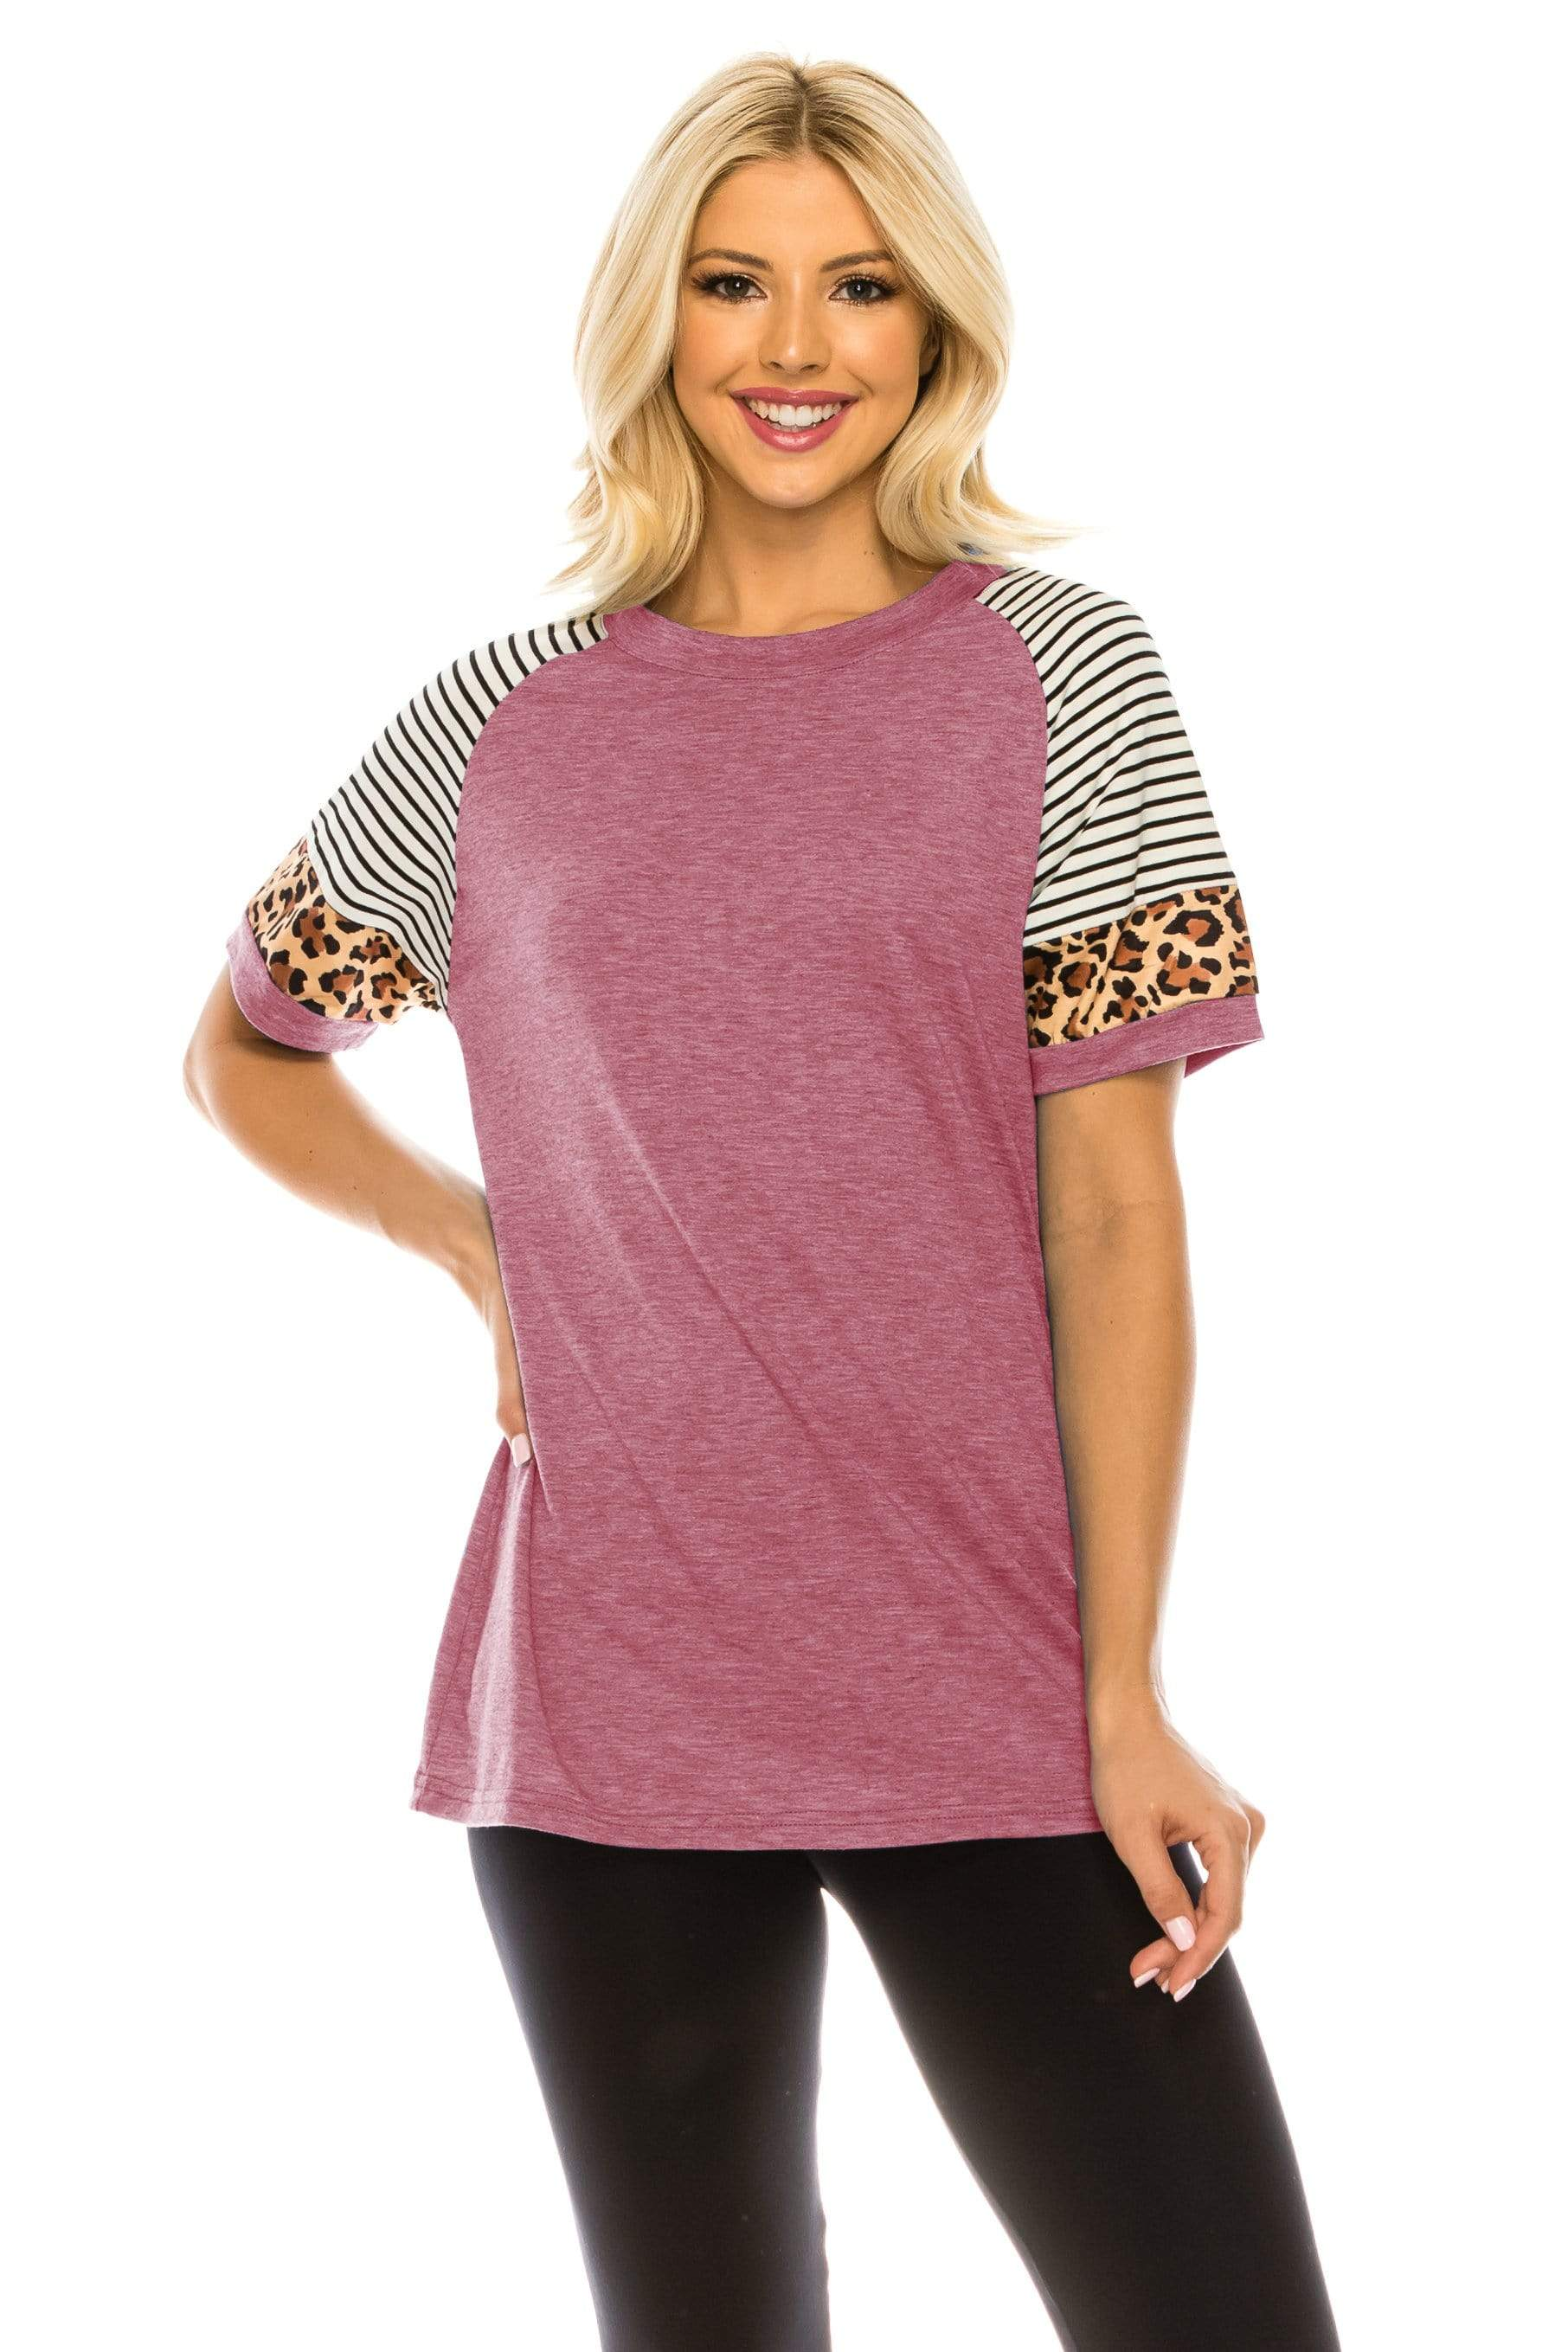 Haute Edition WOMEN'S TOP HEATHER RED / S Haute Edition Women's Crew Neck Color Block Leopard Top. Plue Sizes Available